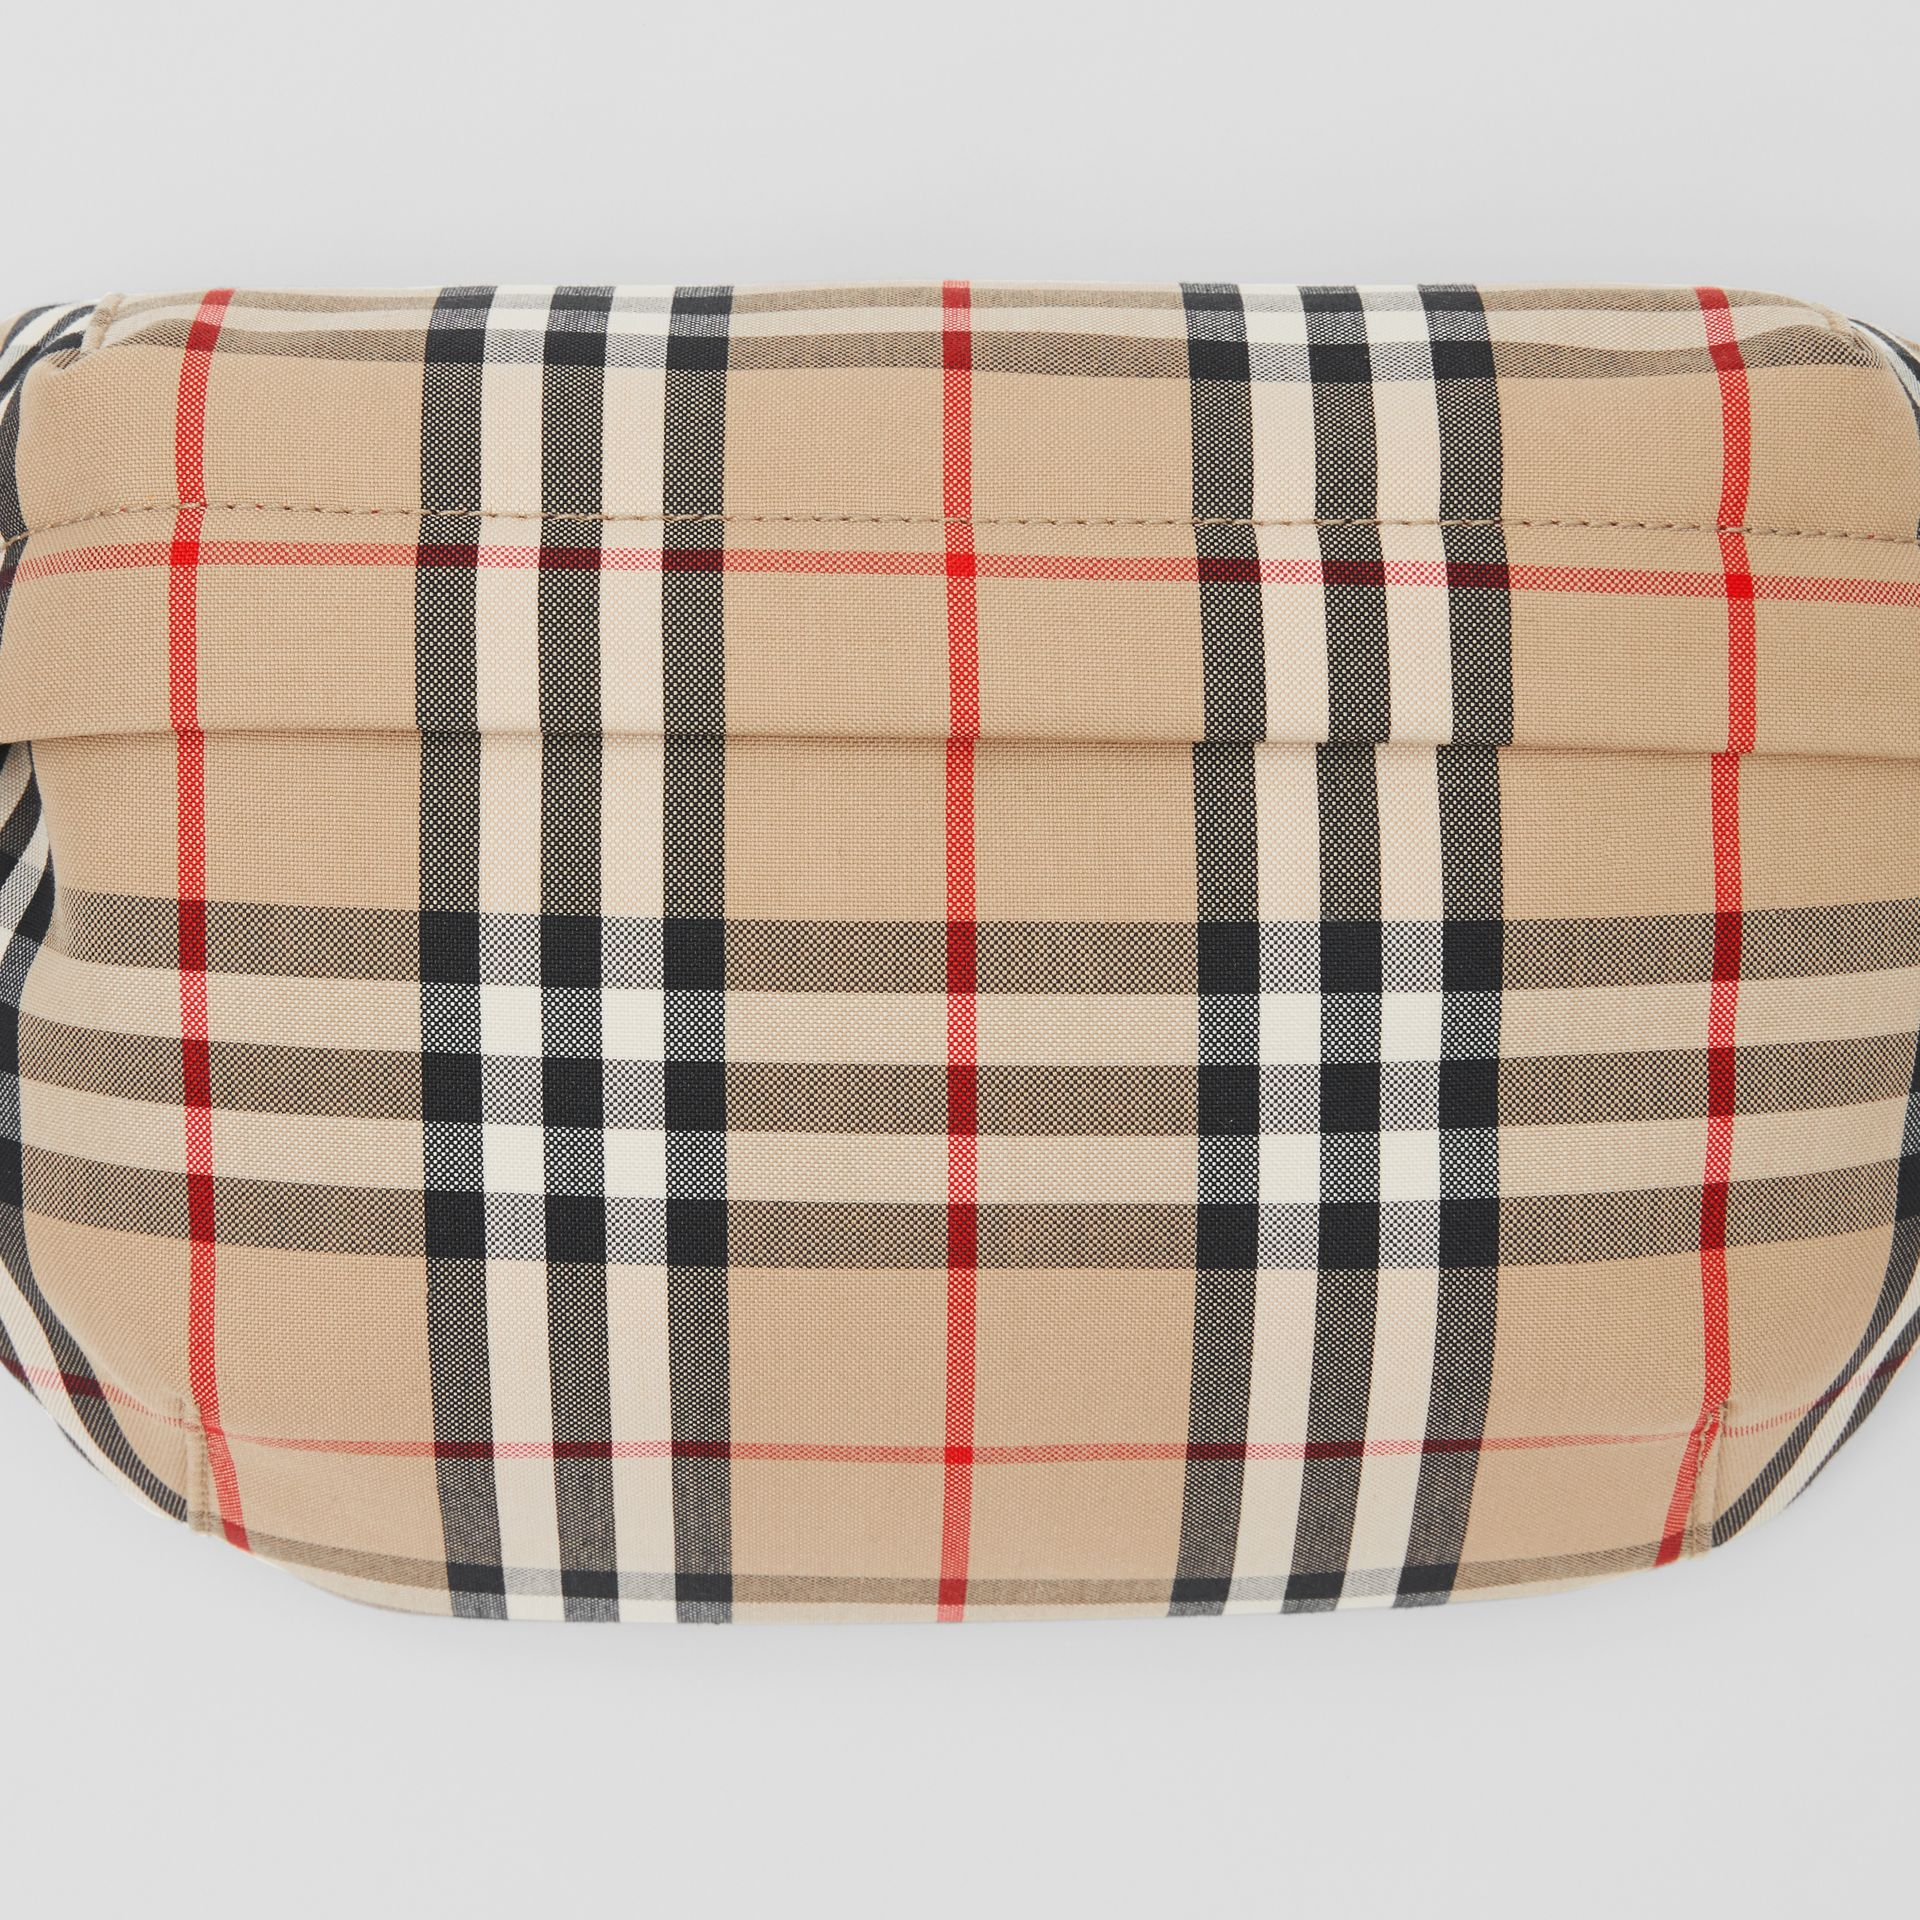 Medium Vintage Check Bonded Cotton Bum Bag in Archive Beige | Burberry - gallery image 1